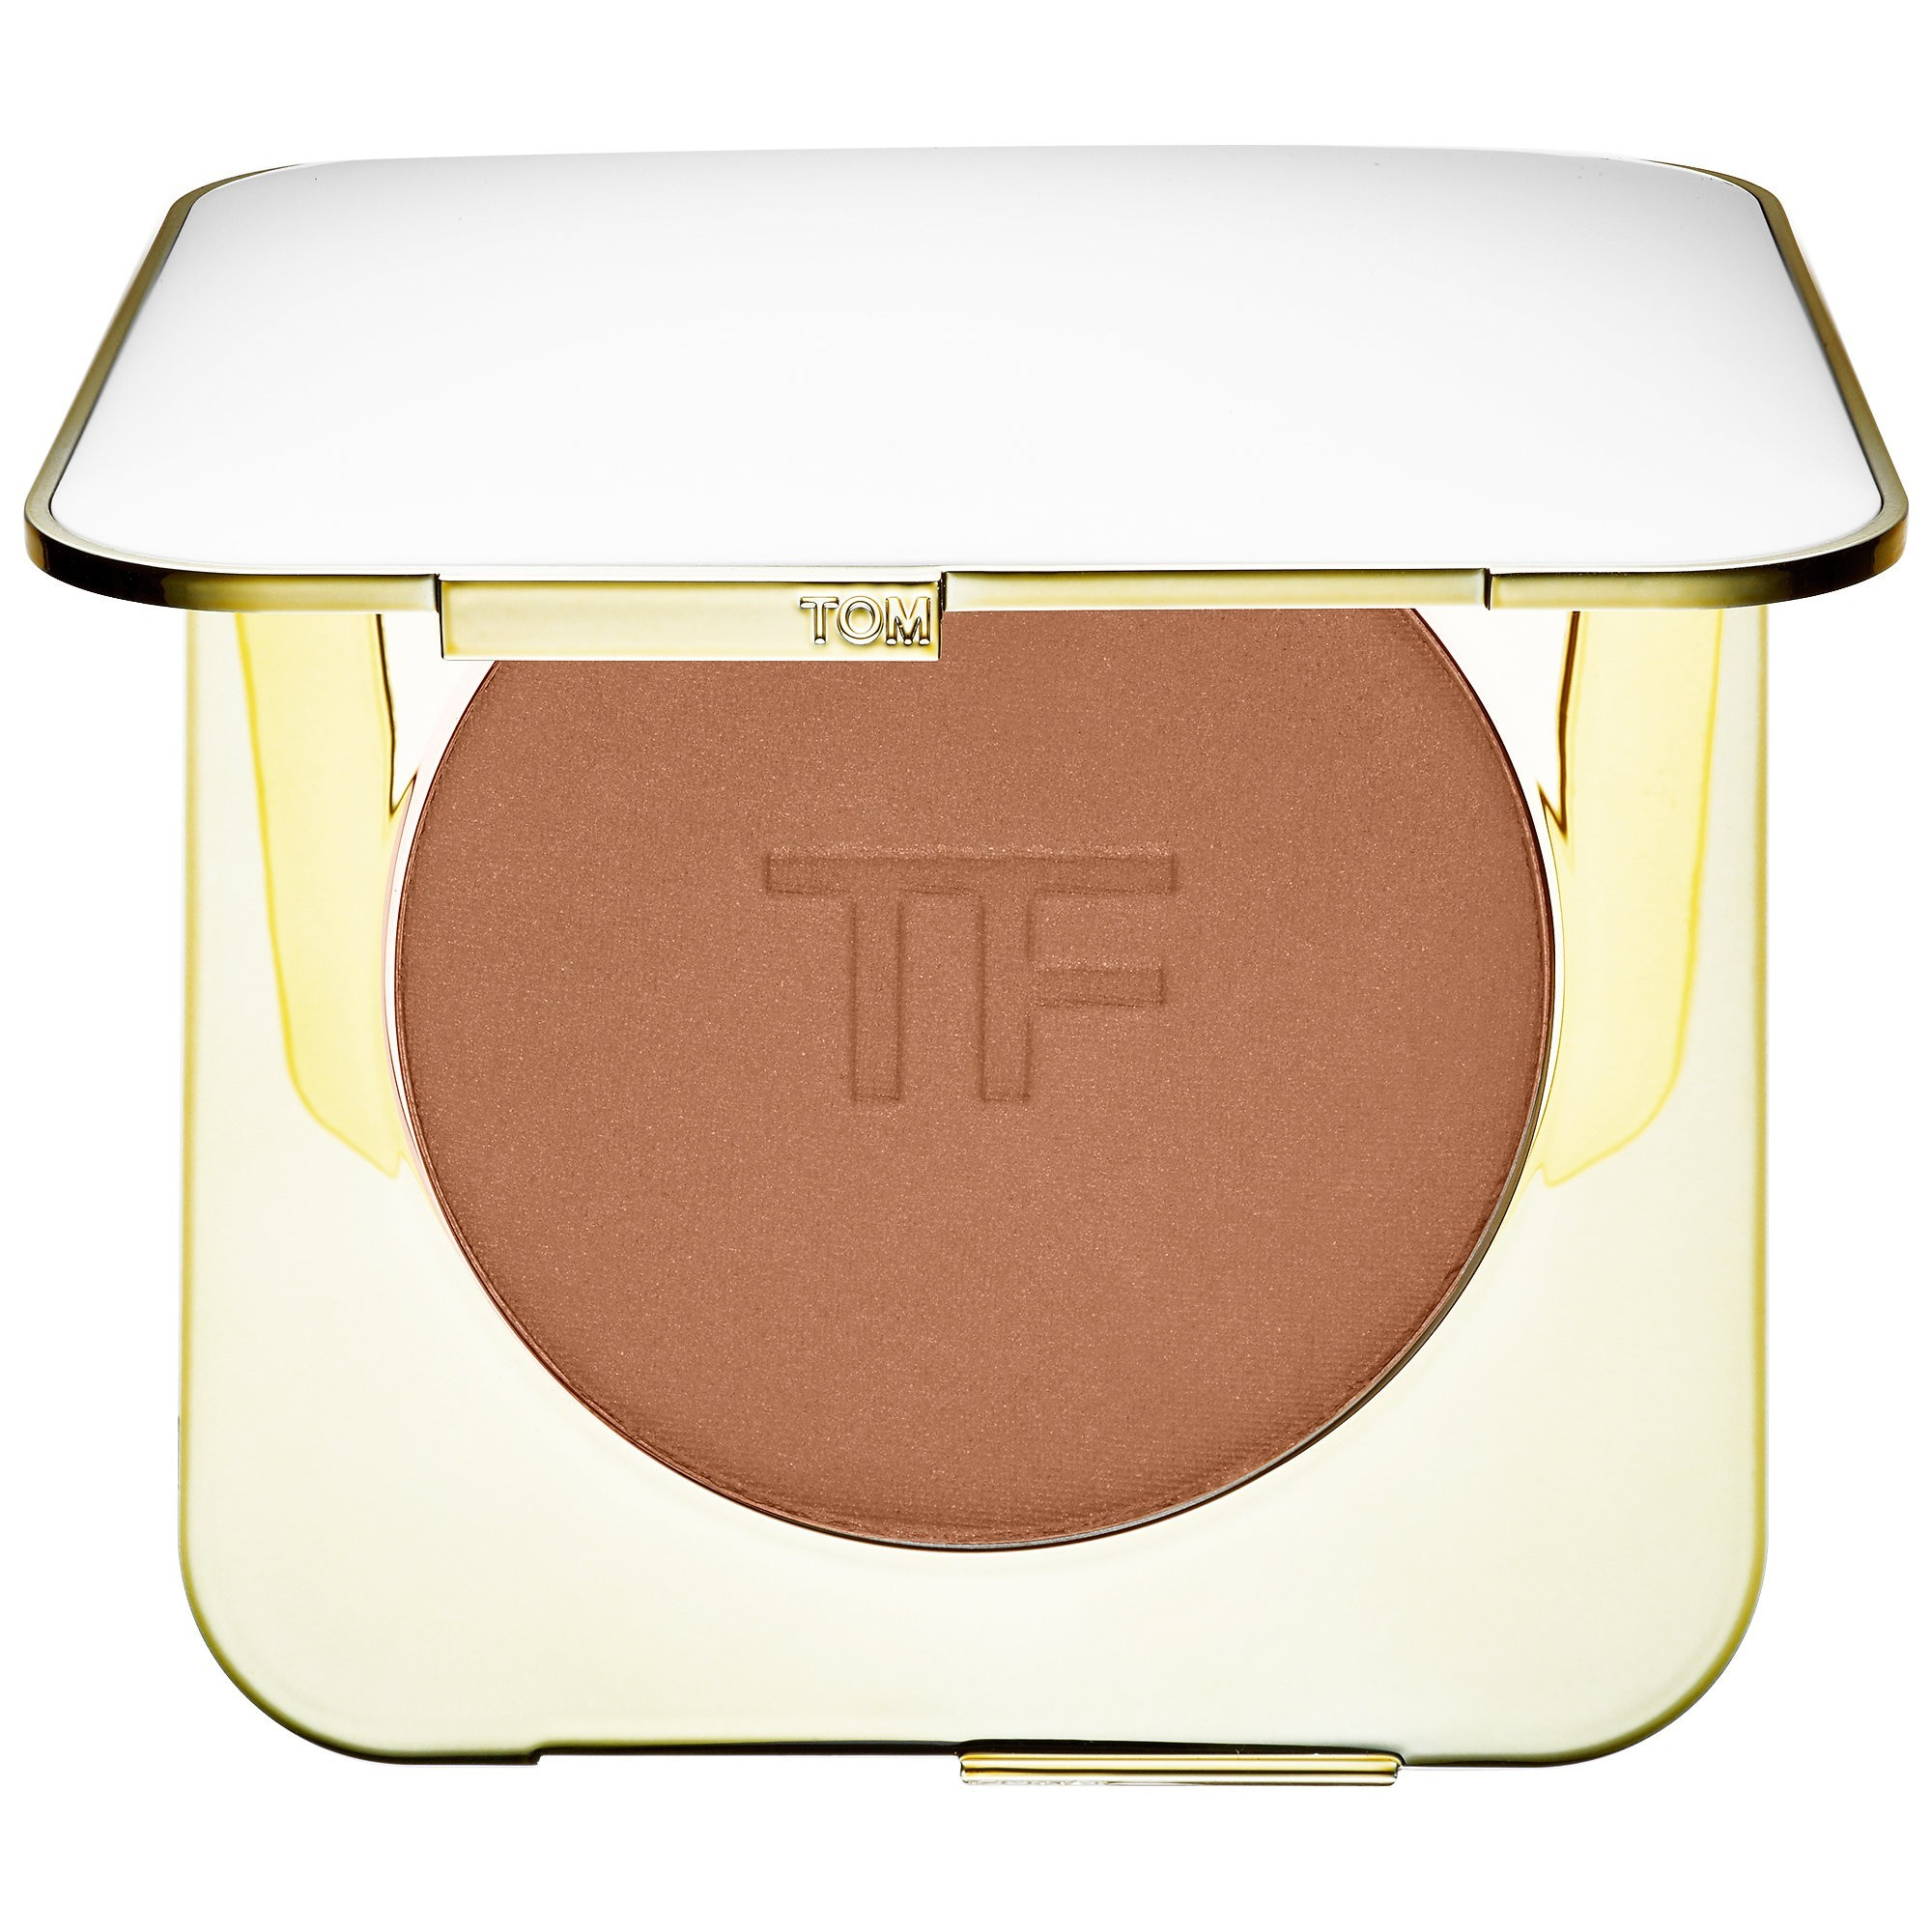 Tom Ford The Ultimate Bronzer Gold Dust